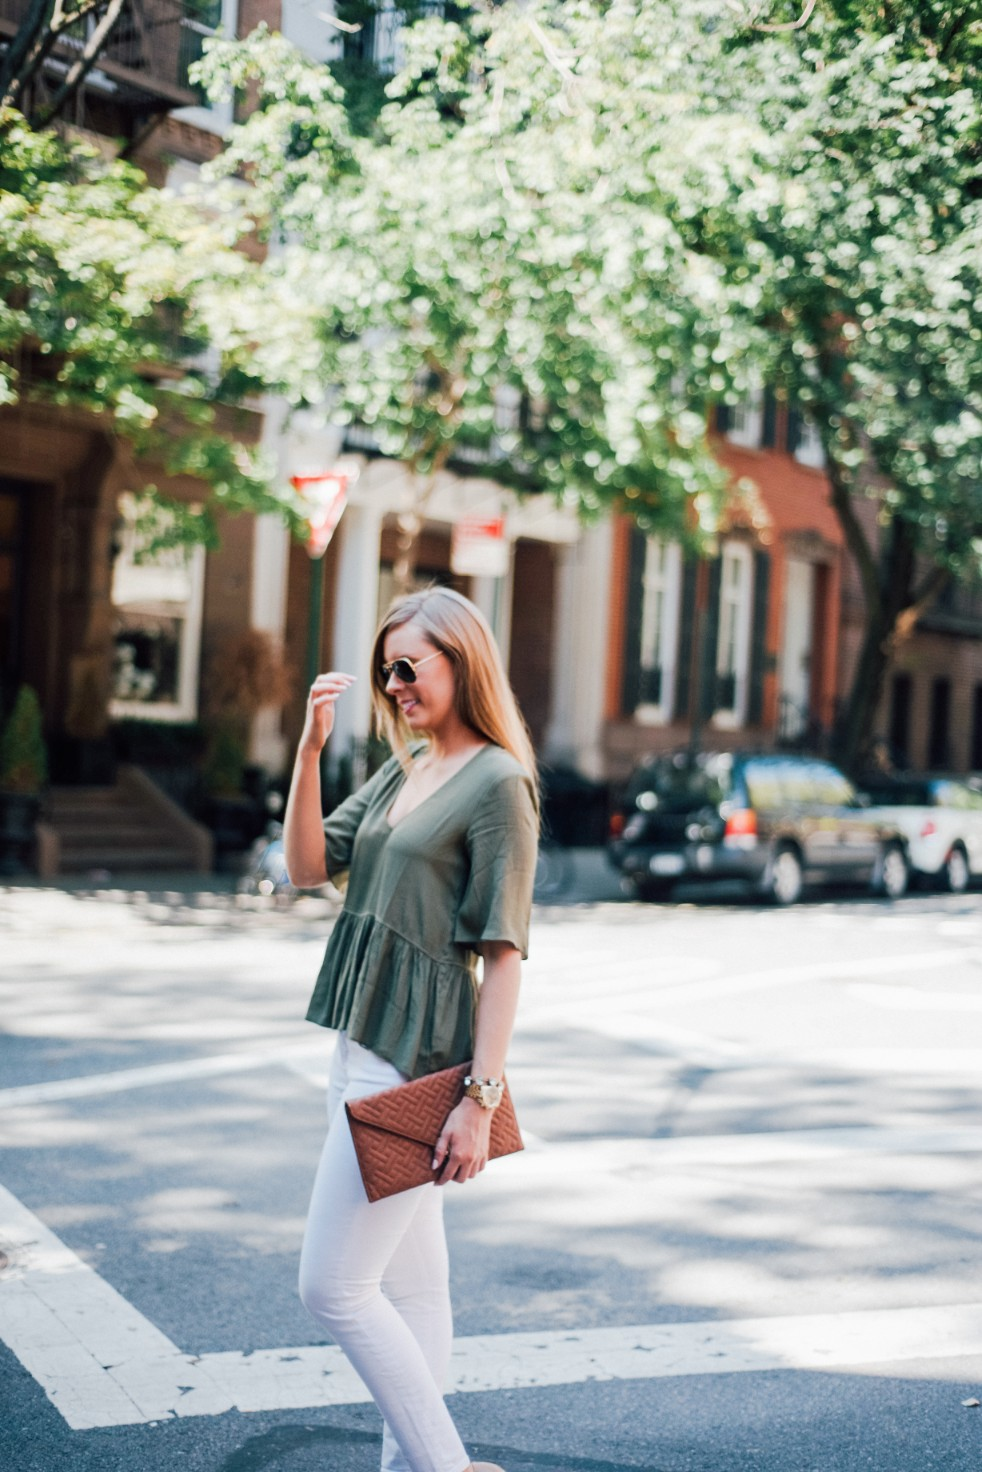 white jeans and peplum top west village fashion new york fashion blogger lauren slade style elixir blog spring outfit ideas 12 - Style Sessions - White Jeans and Peplum Top in the West Village featured by popular US style blogger, Style Elixir